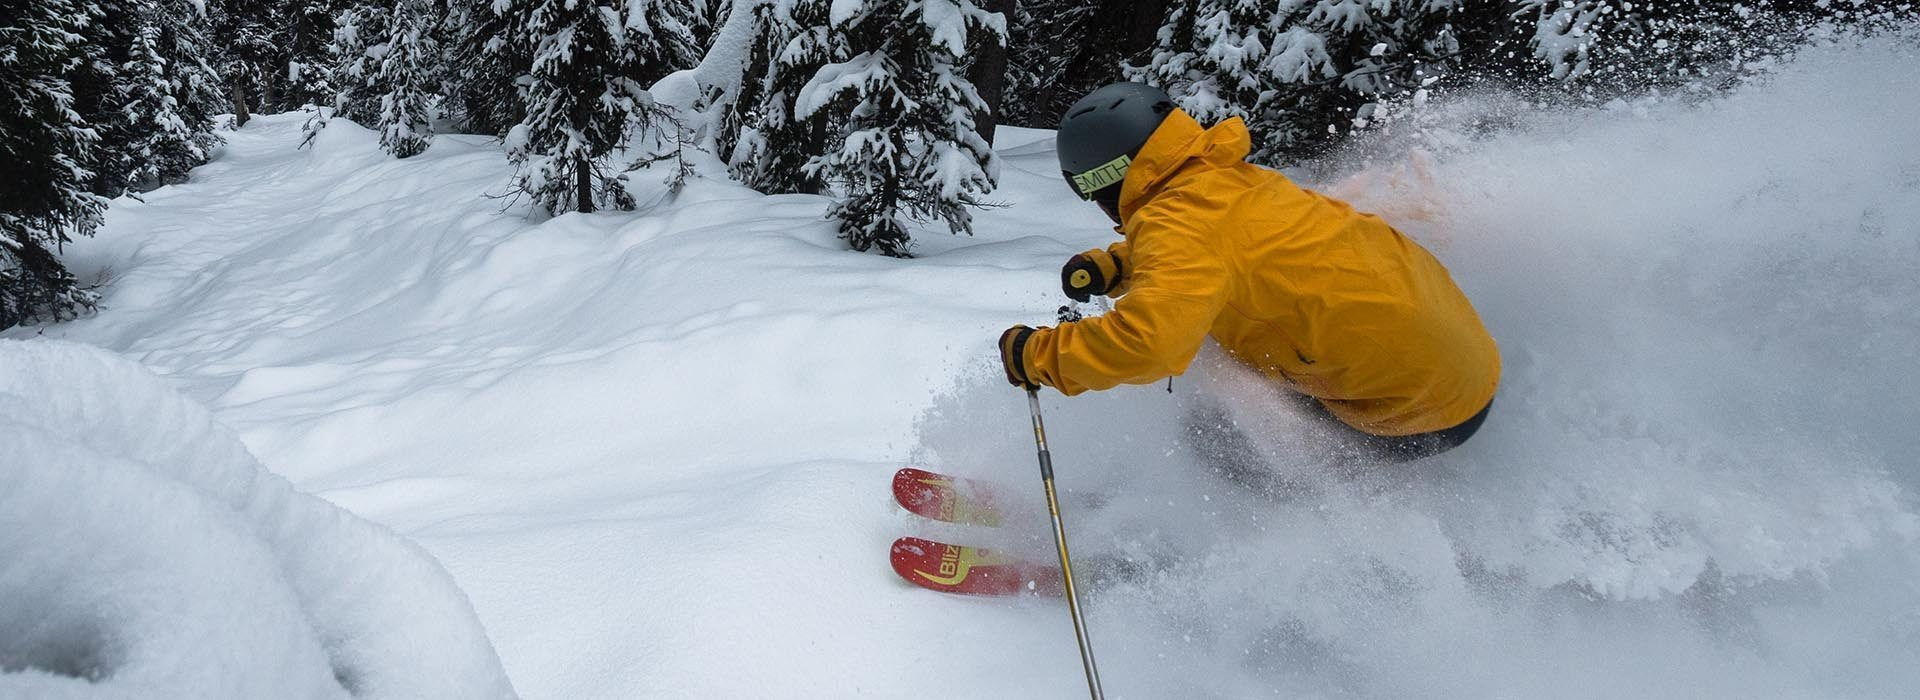 5 REASONS TO BOOK YOUR SKI VACATION EARLY - FEATURE IMAGE